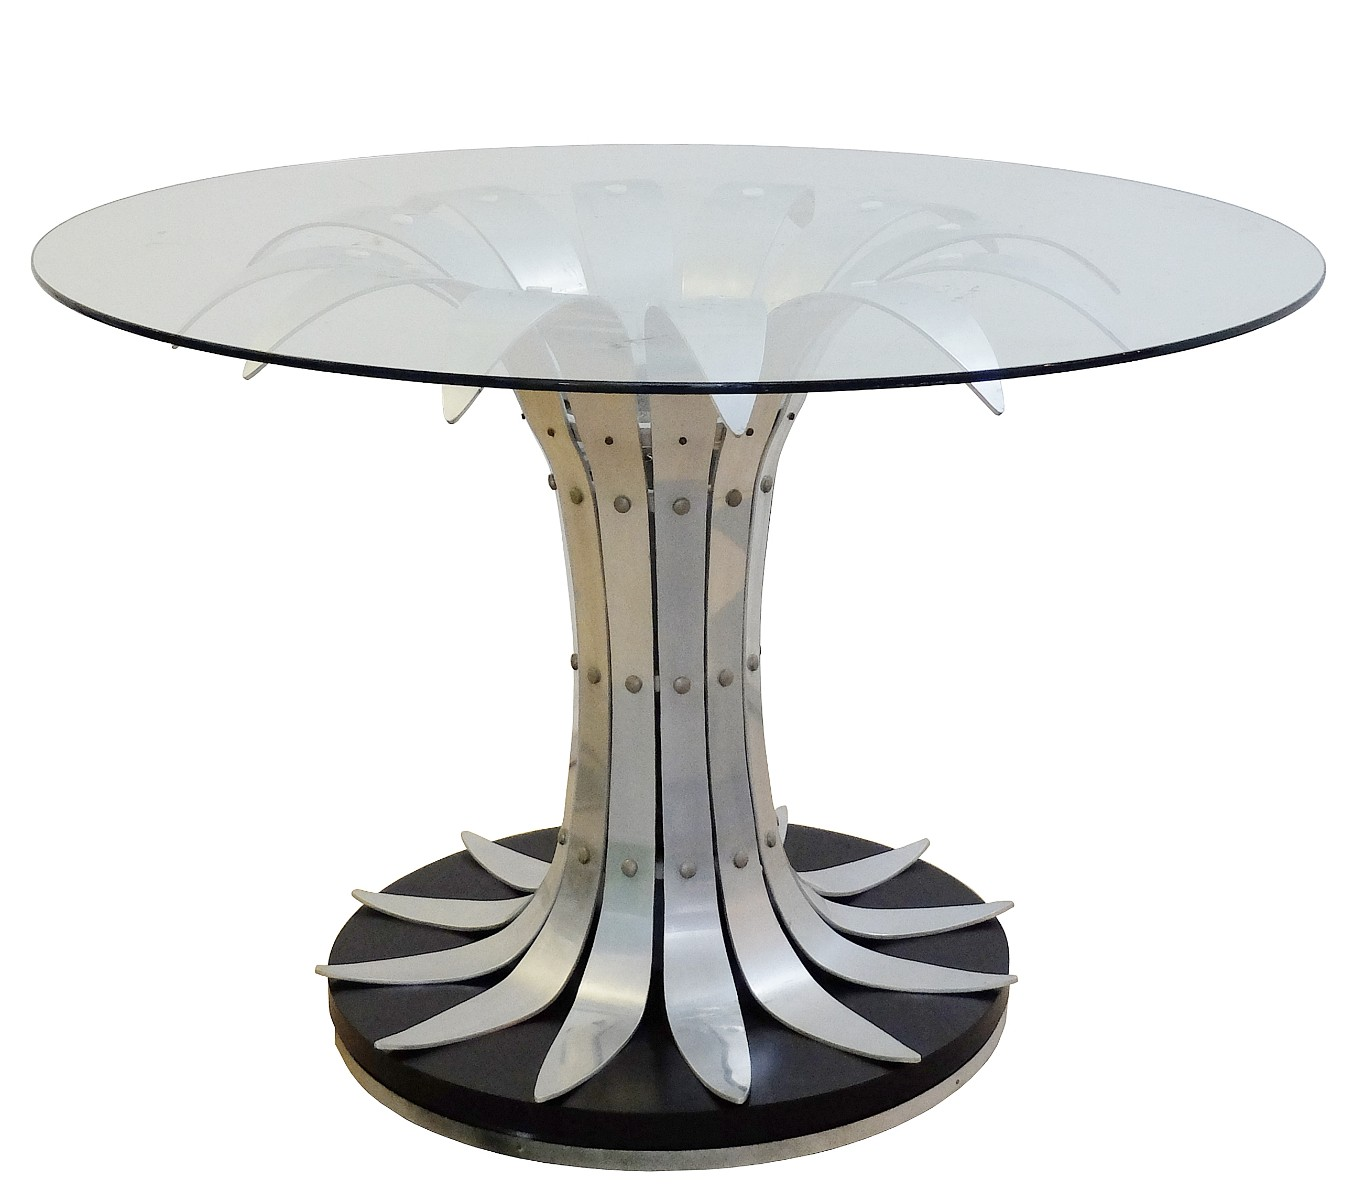 Dining Table With Flower Shaped Brushed Chrome Glass Top Dining Room Items By Category European Antiques Decorative